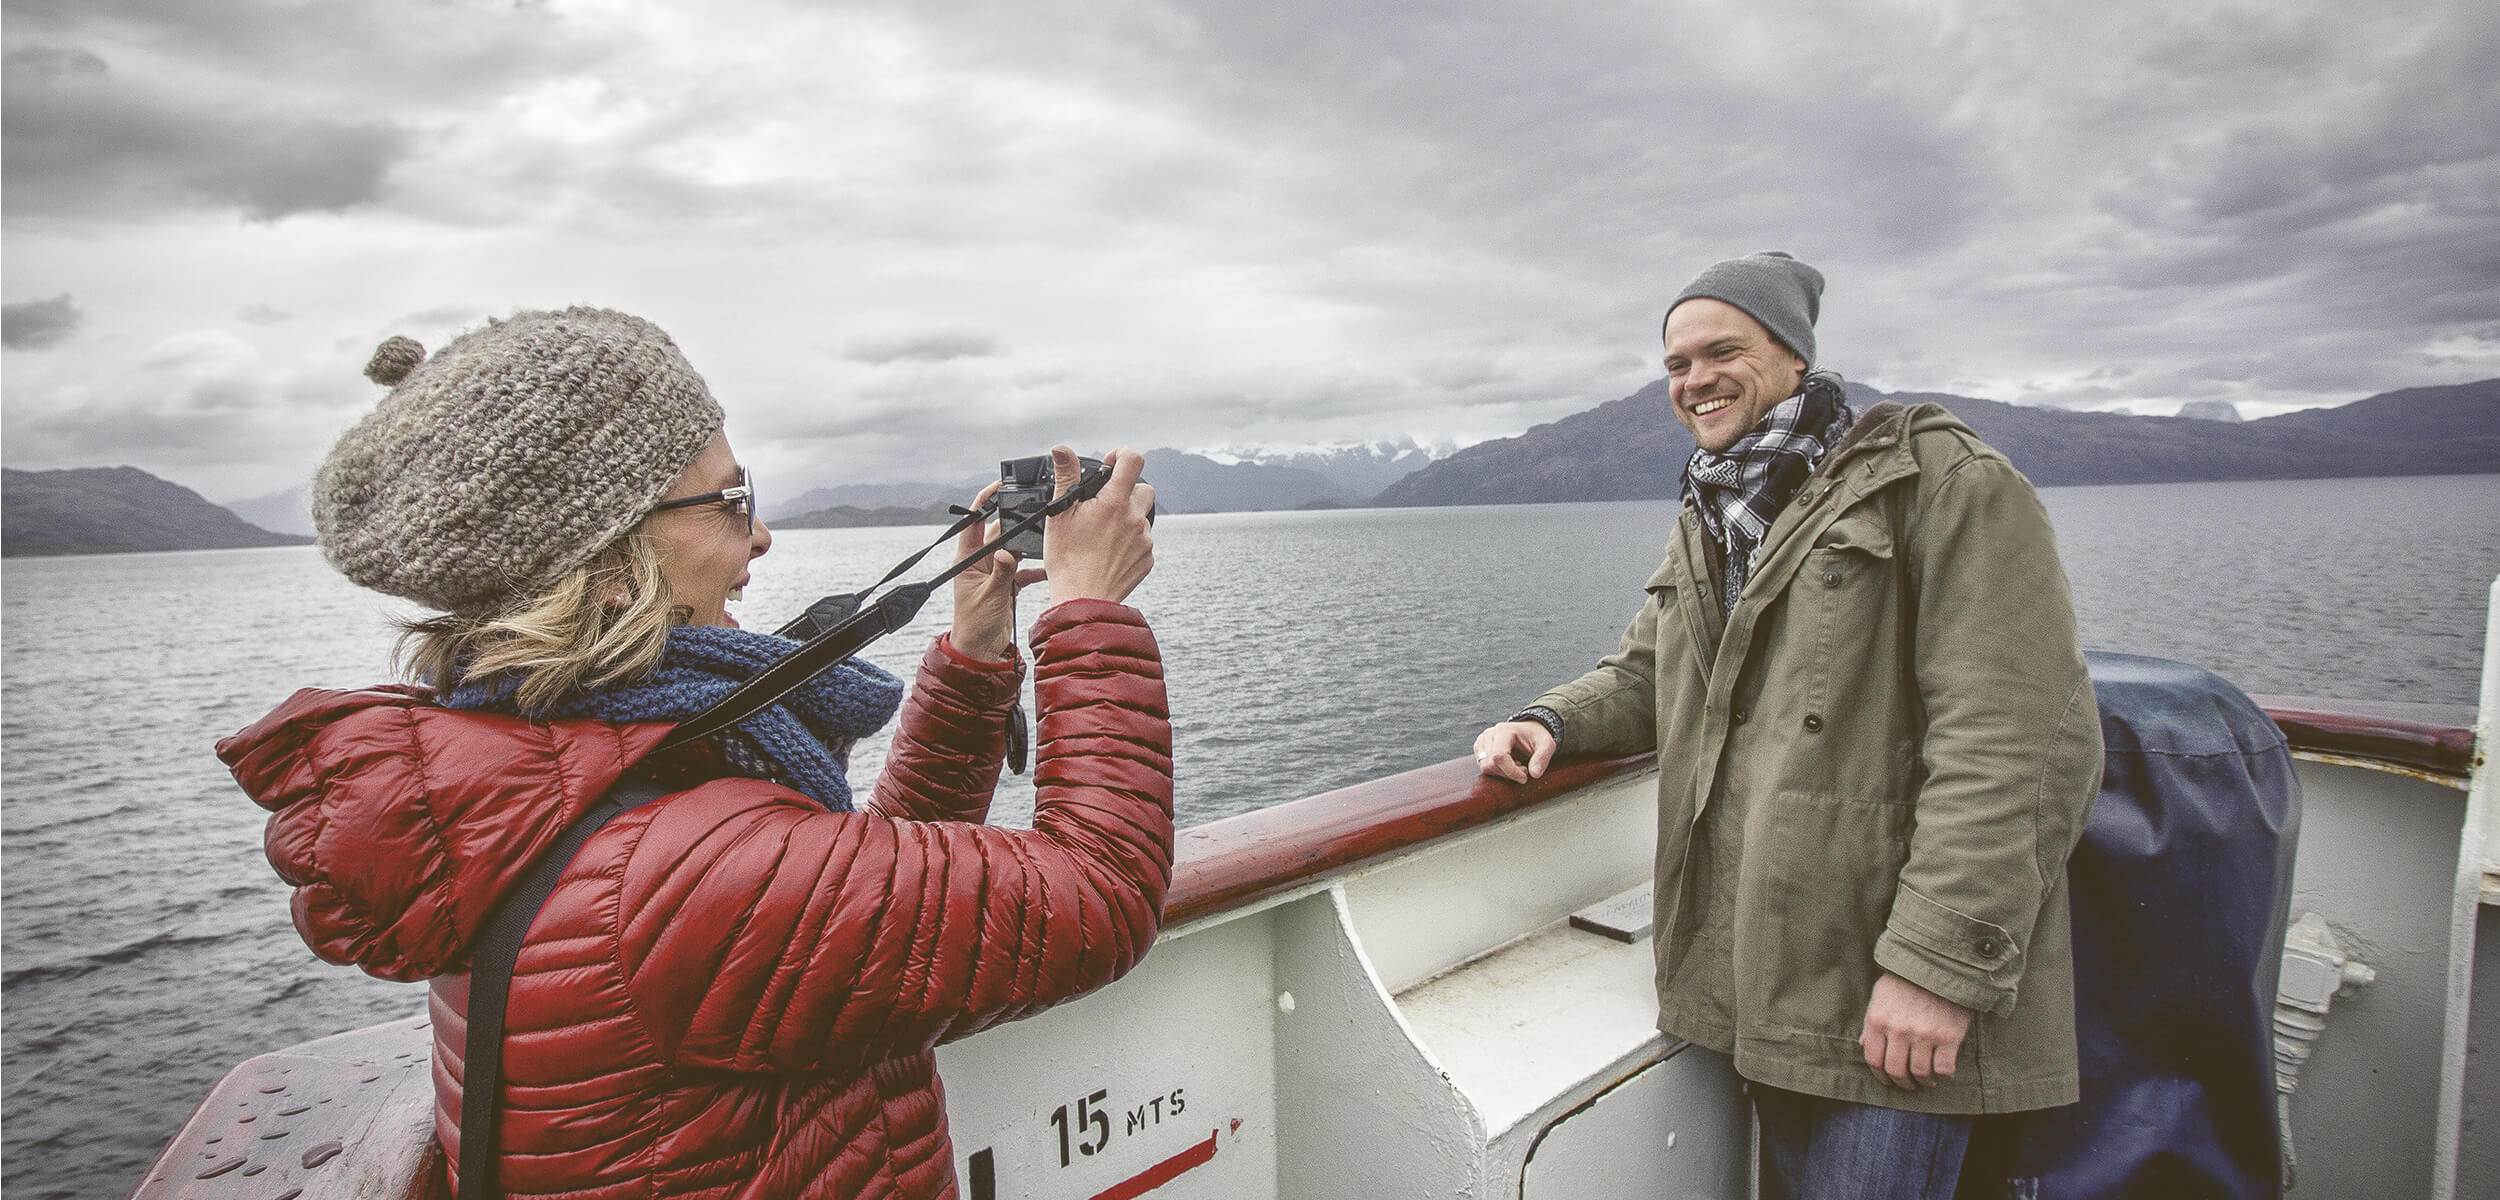 See what other travelers say about the Navimag ferry experience